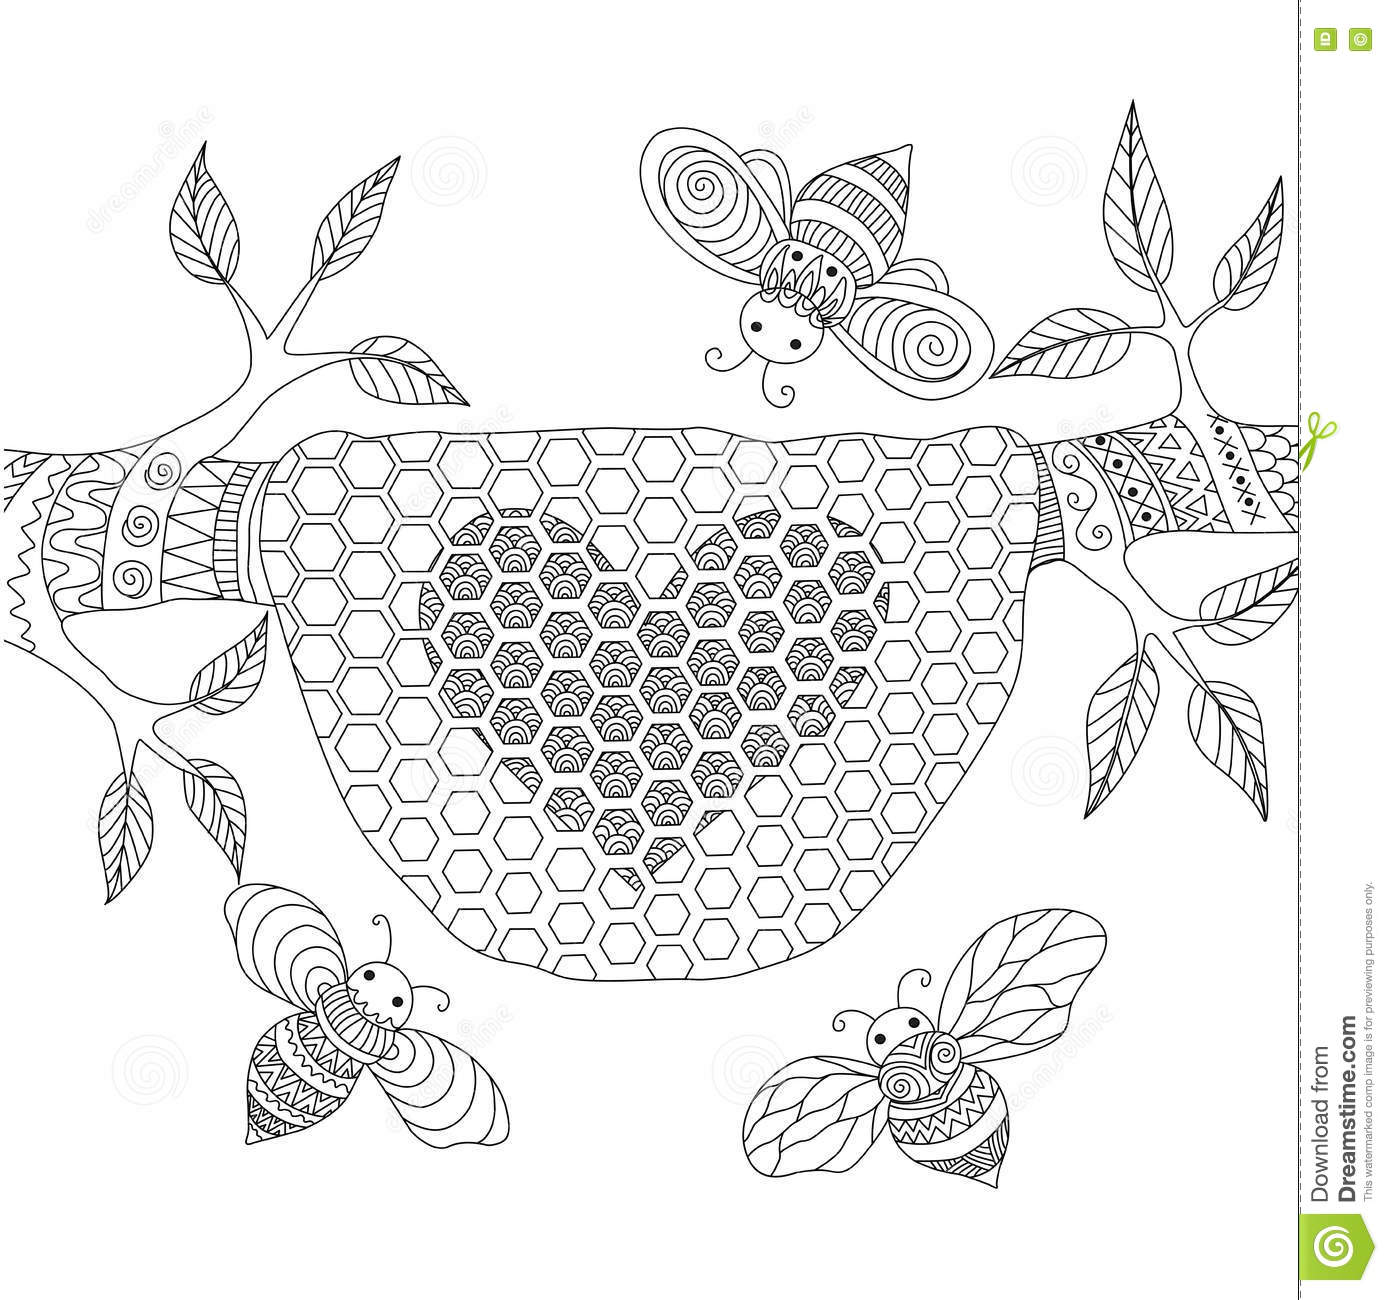 line art design of honey bees flying around beehive stock vector